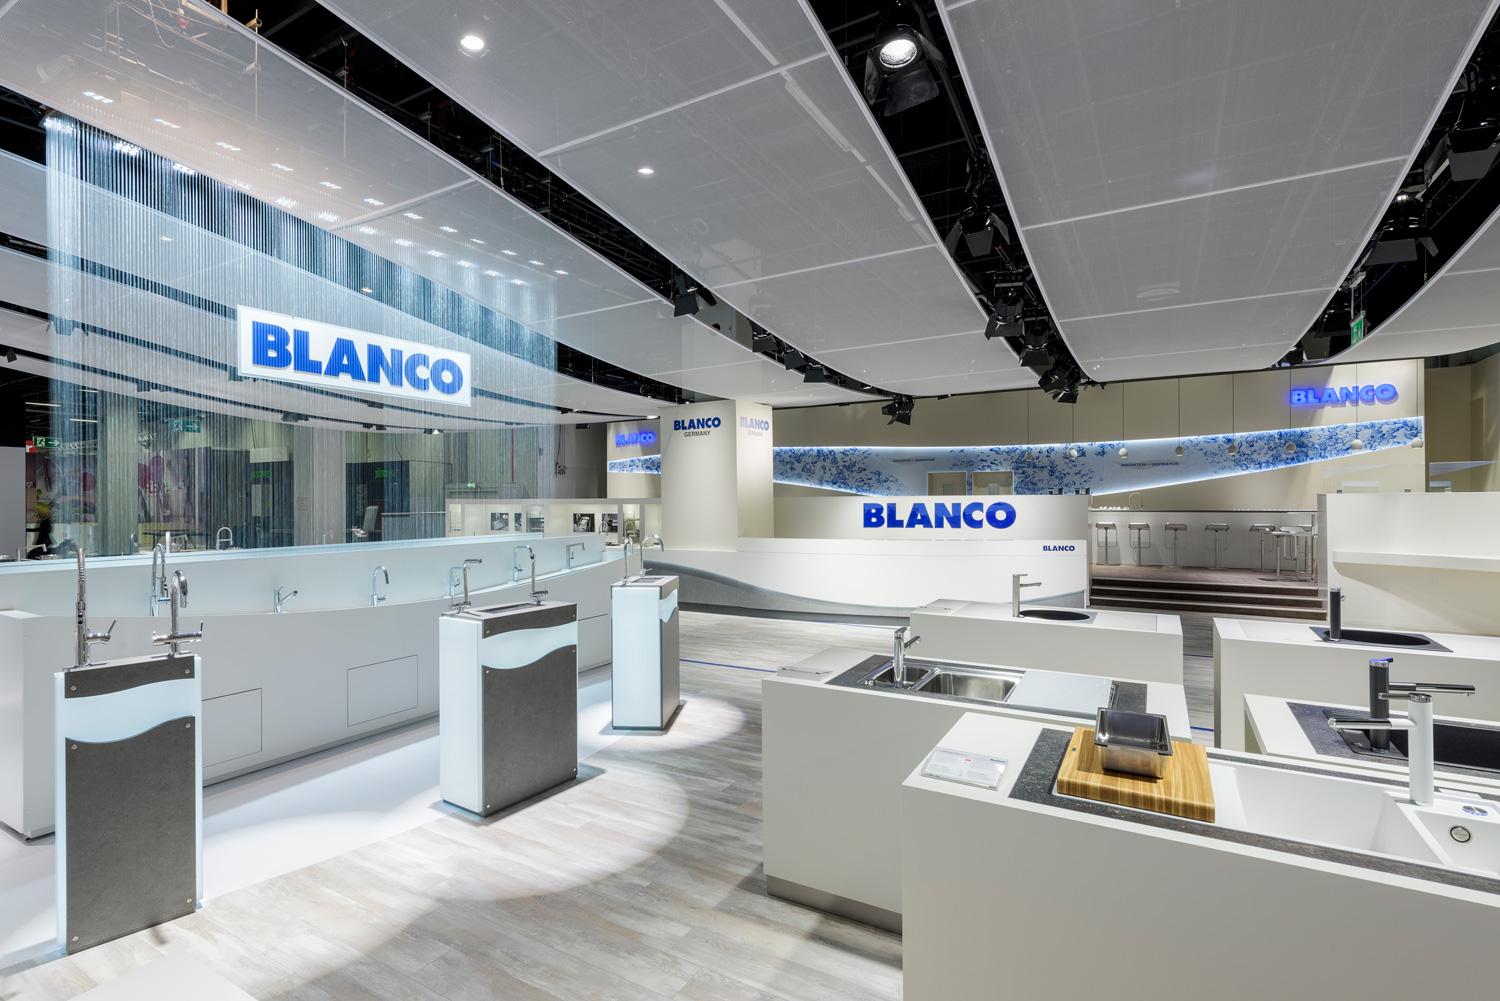 blanco-custom-exhibit-ges-2018